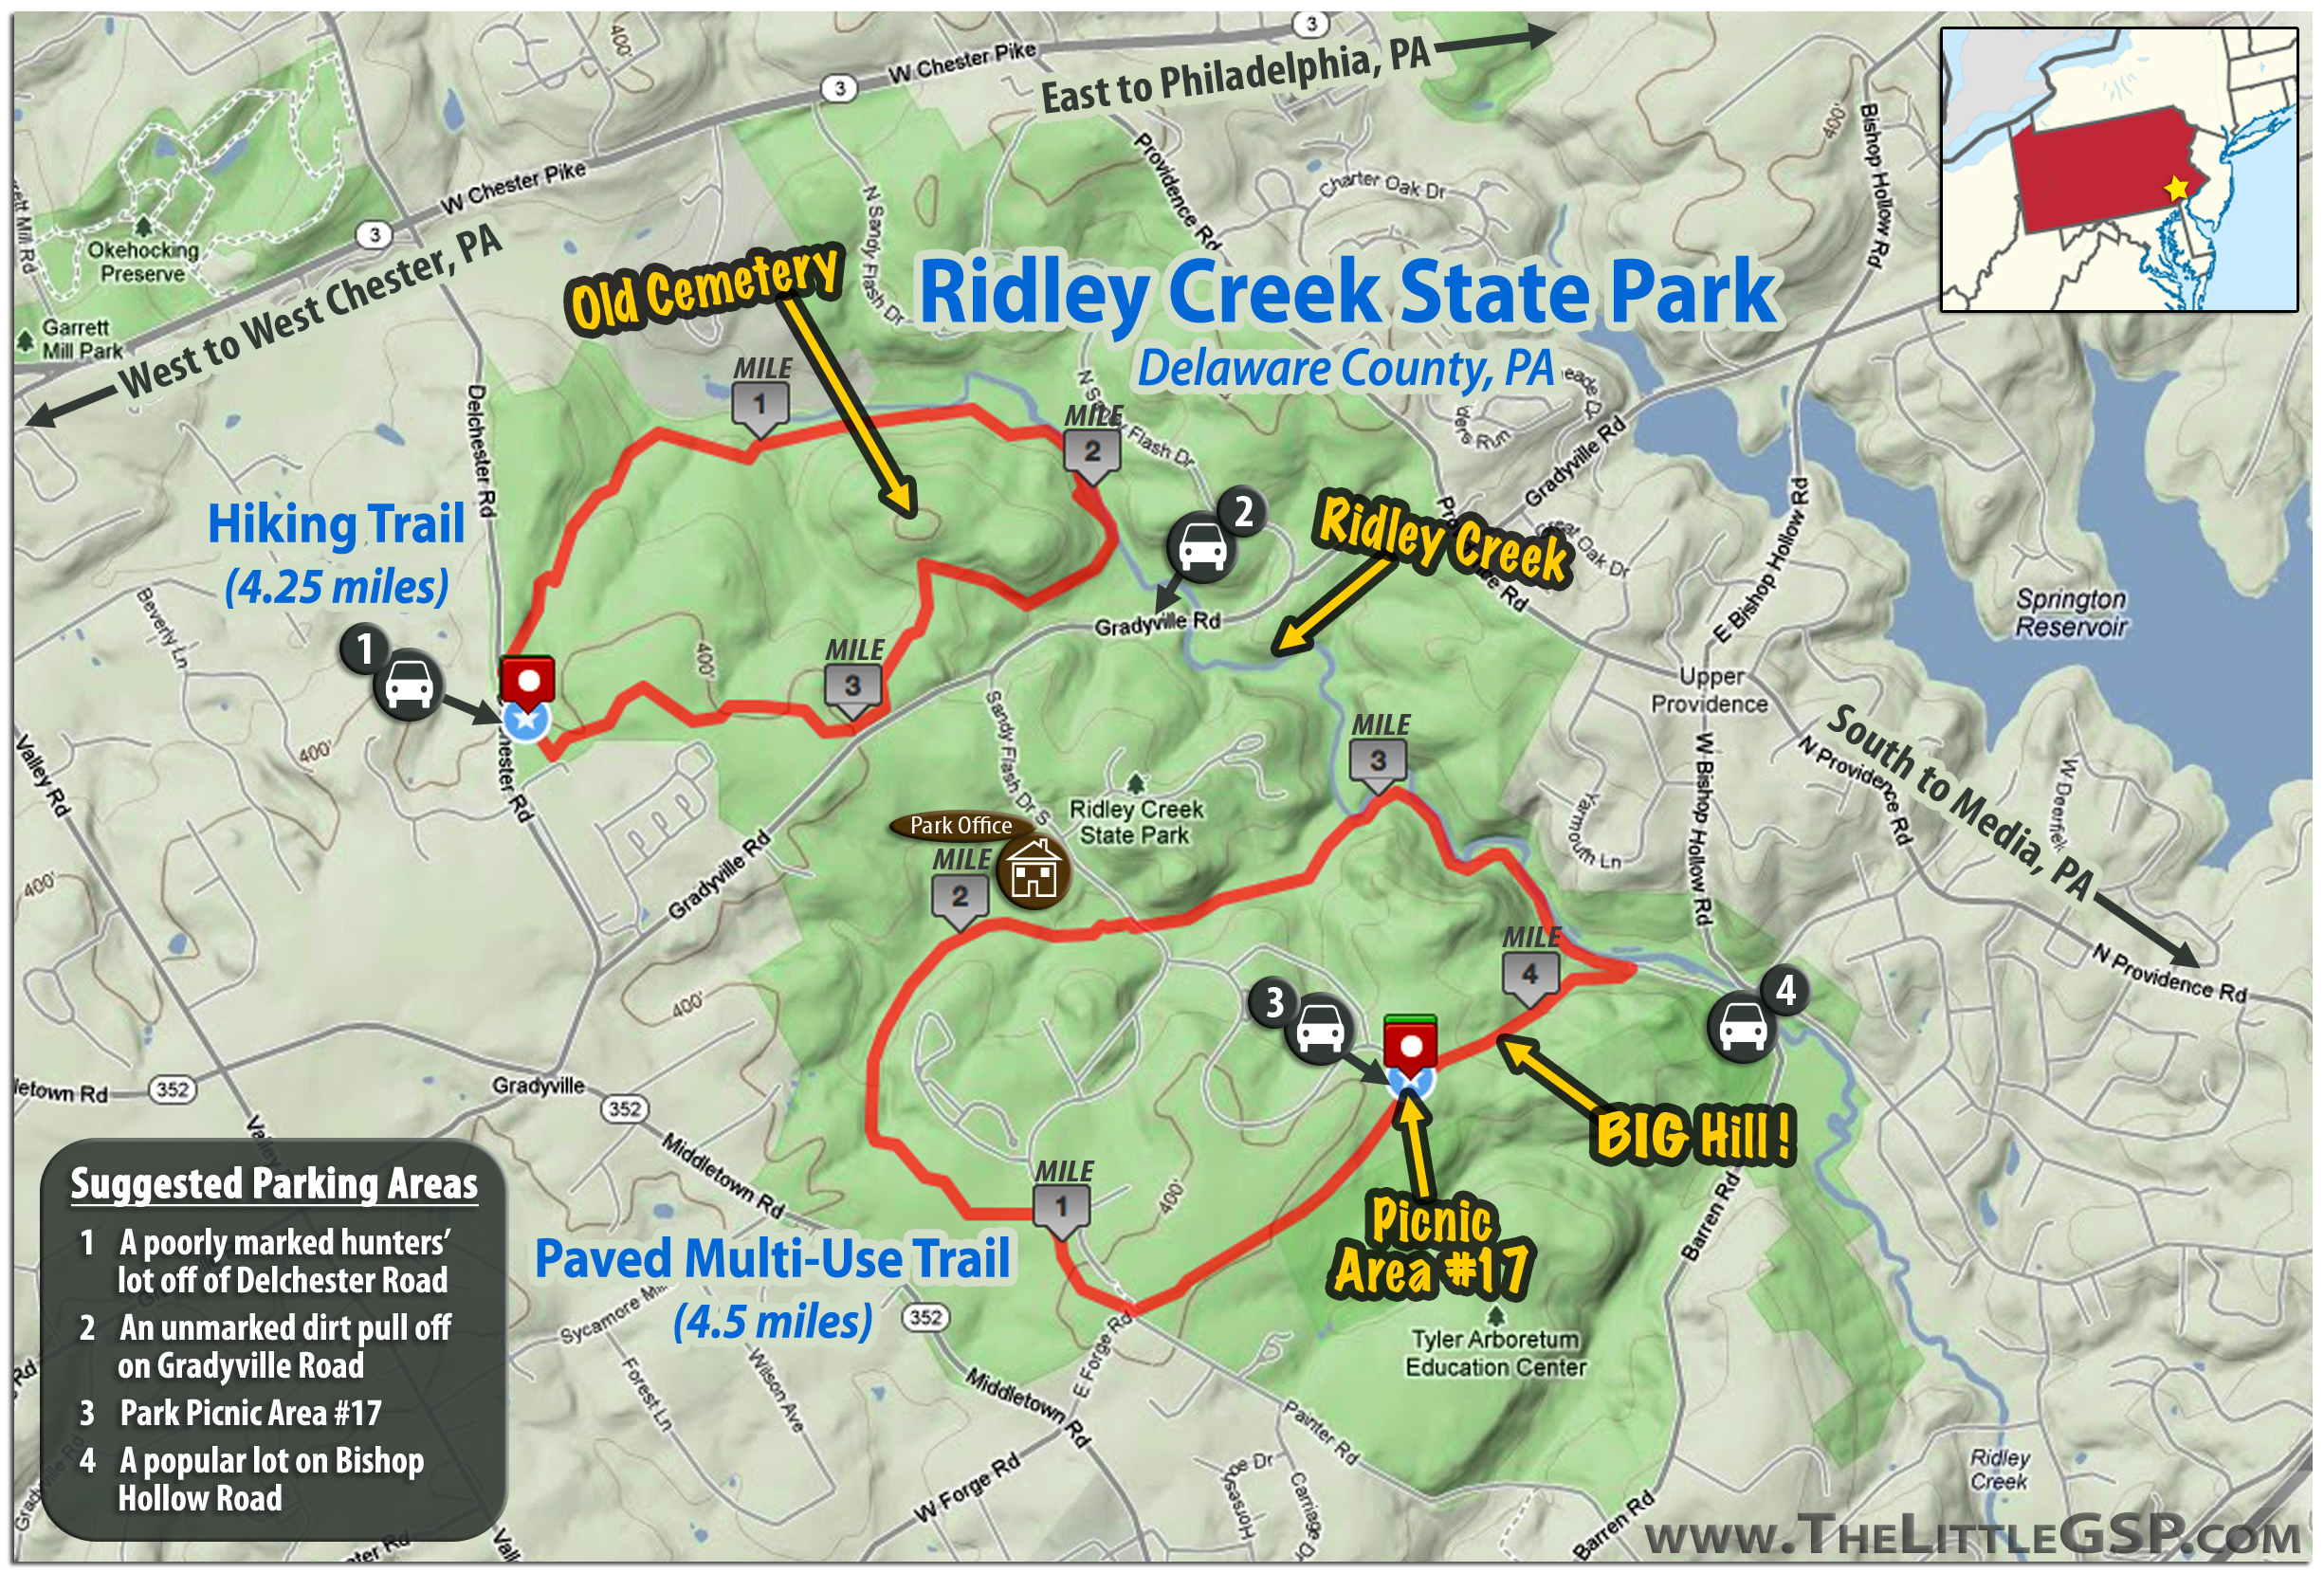 Ridley Creek State Park Map Ridley Creek State Park | The Little GSP